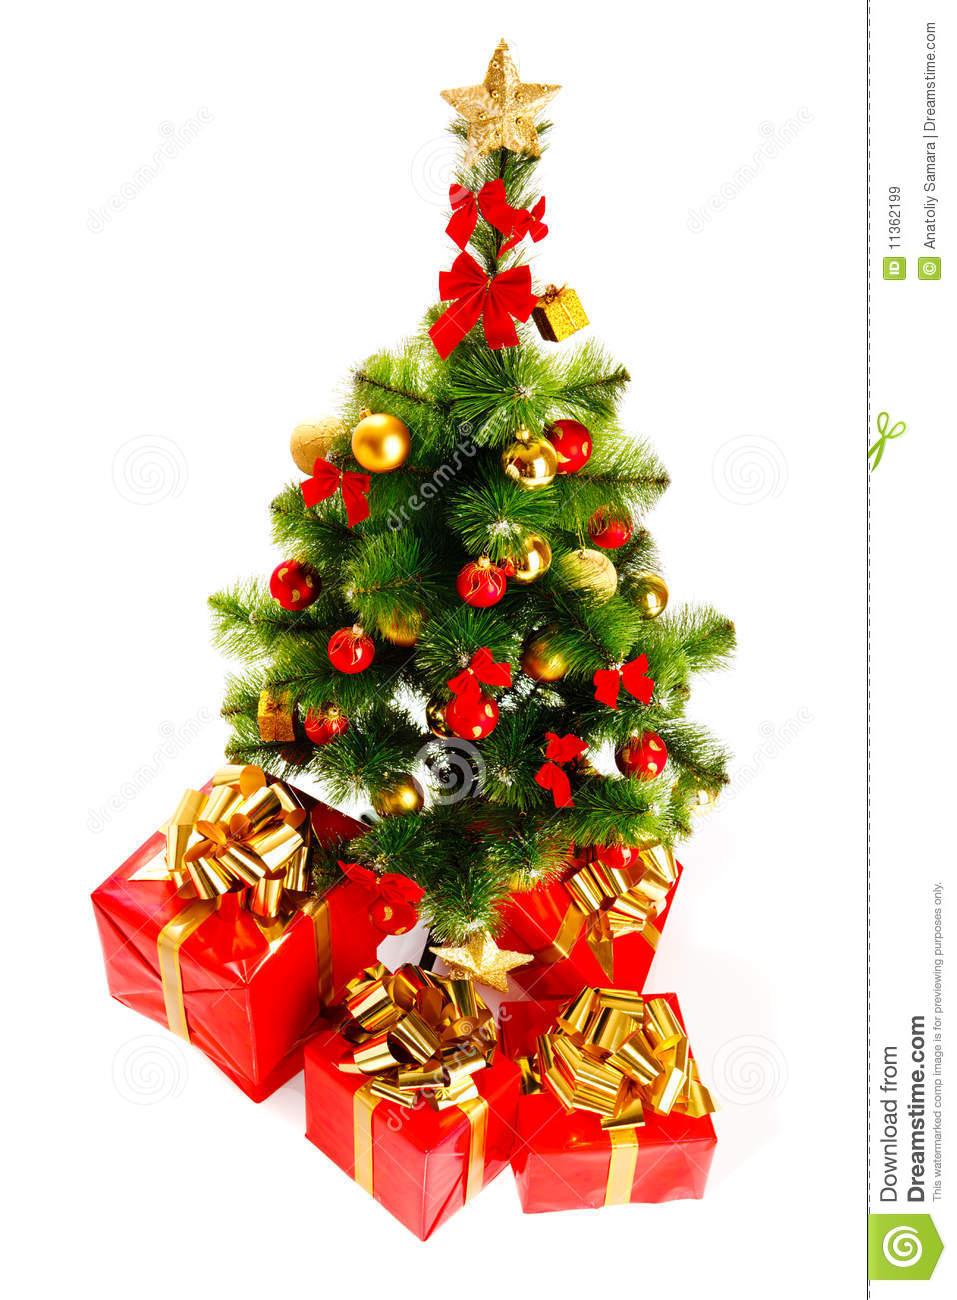 Christmas Tree Celebration